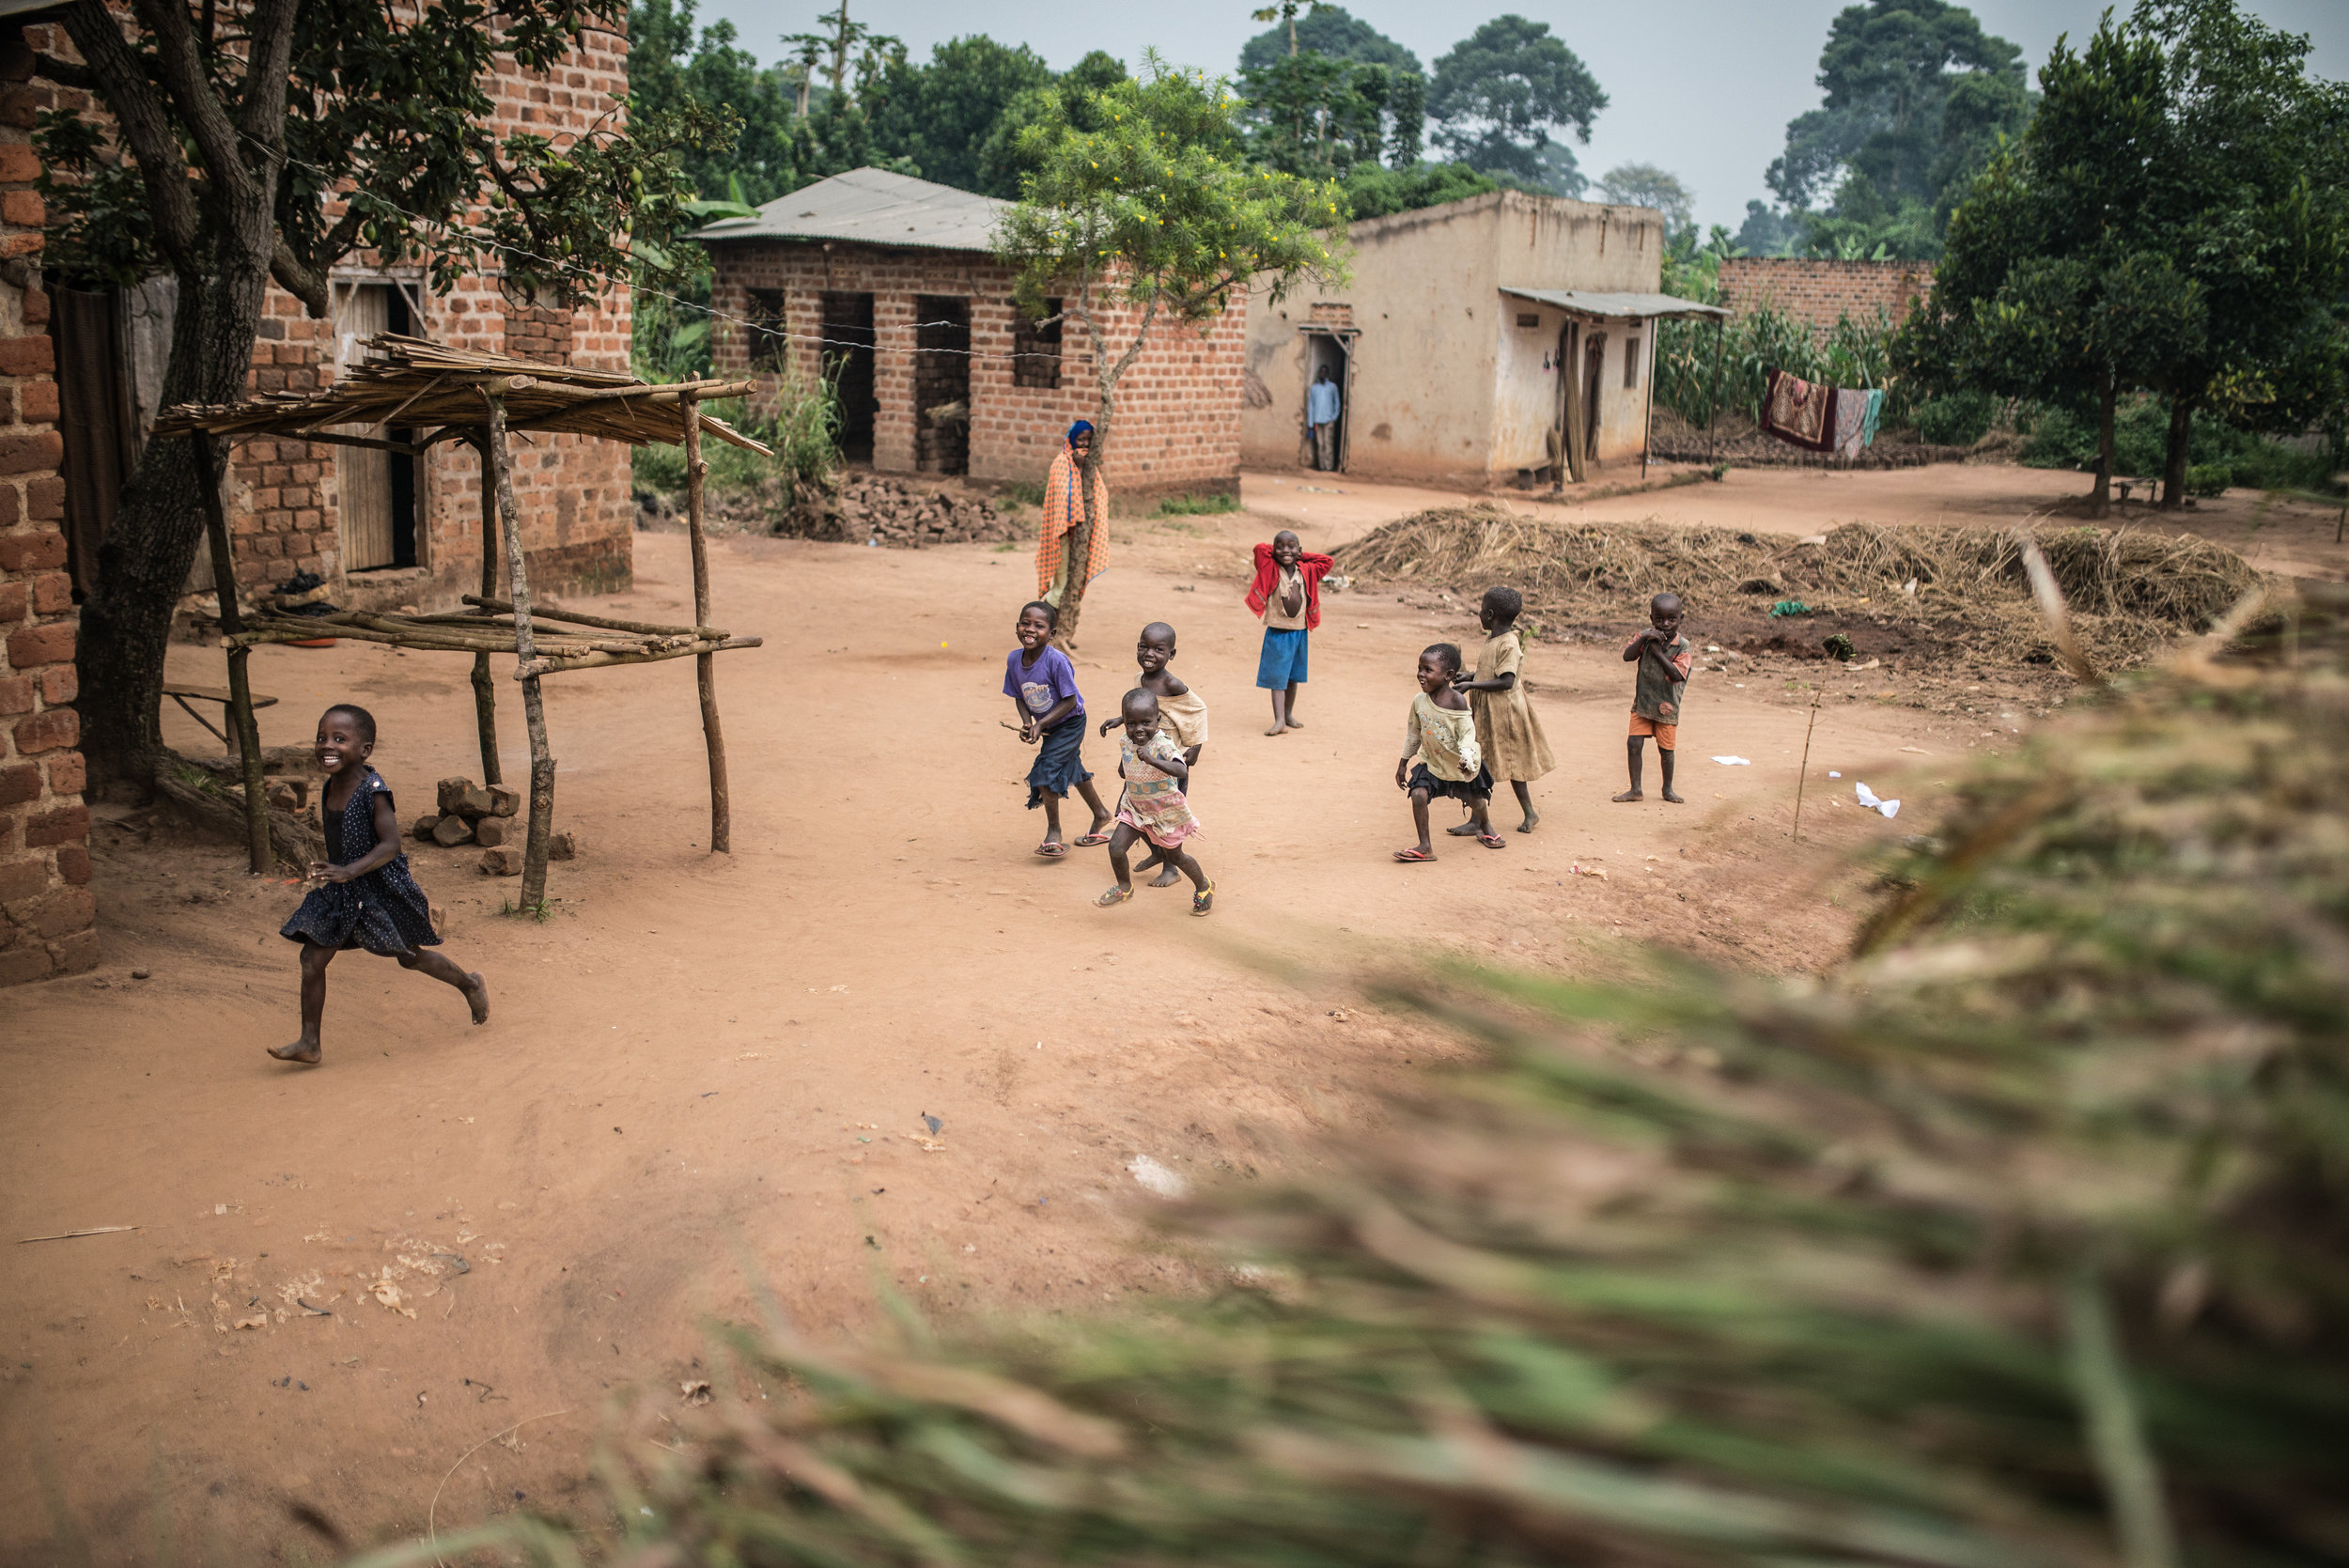 A scene from the village where our hub is located in Uganda.